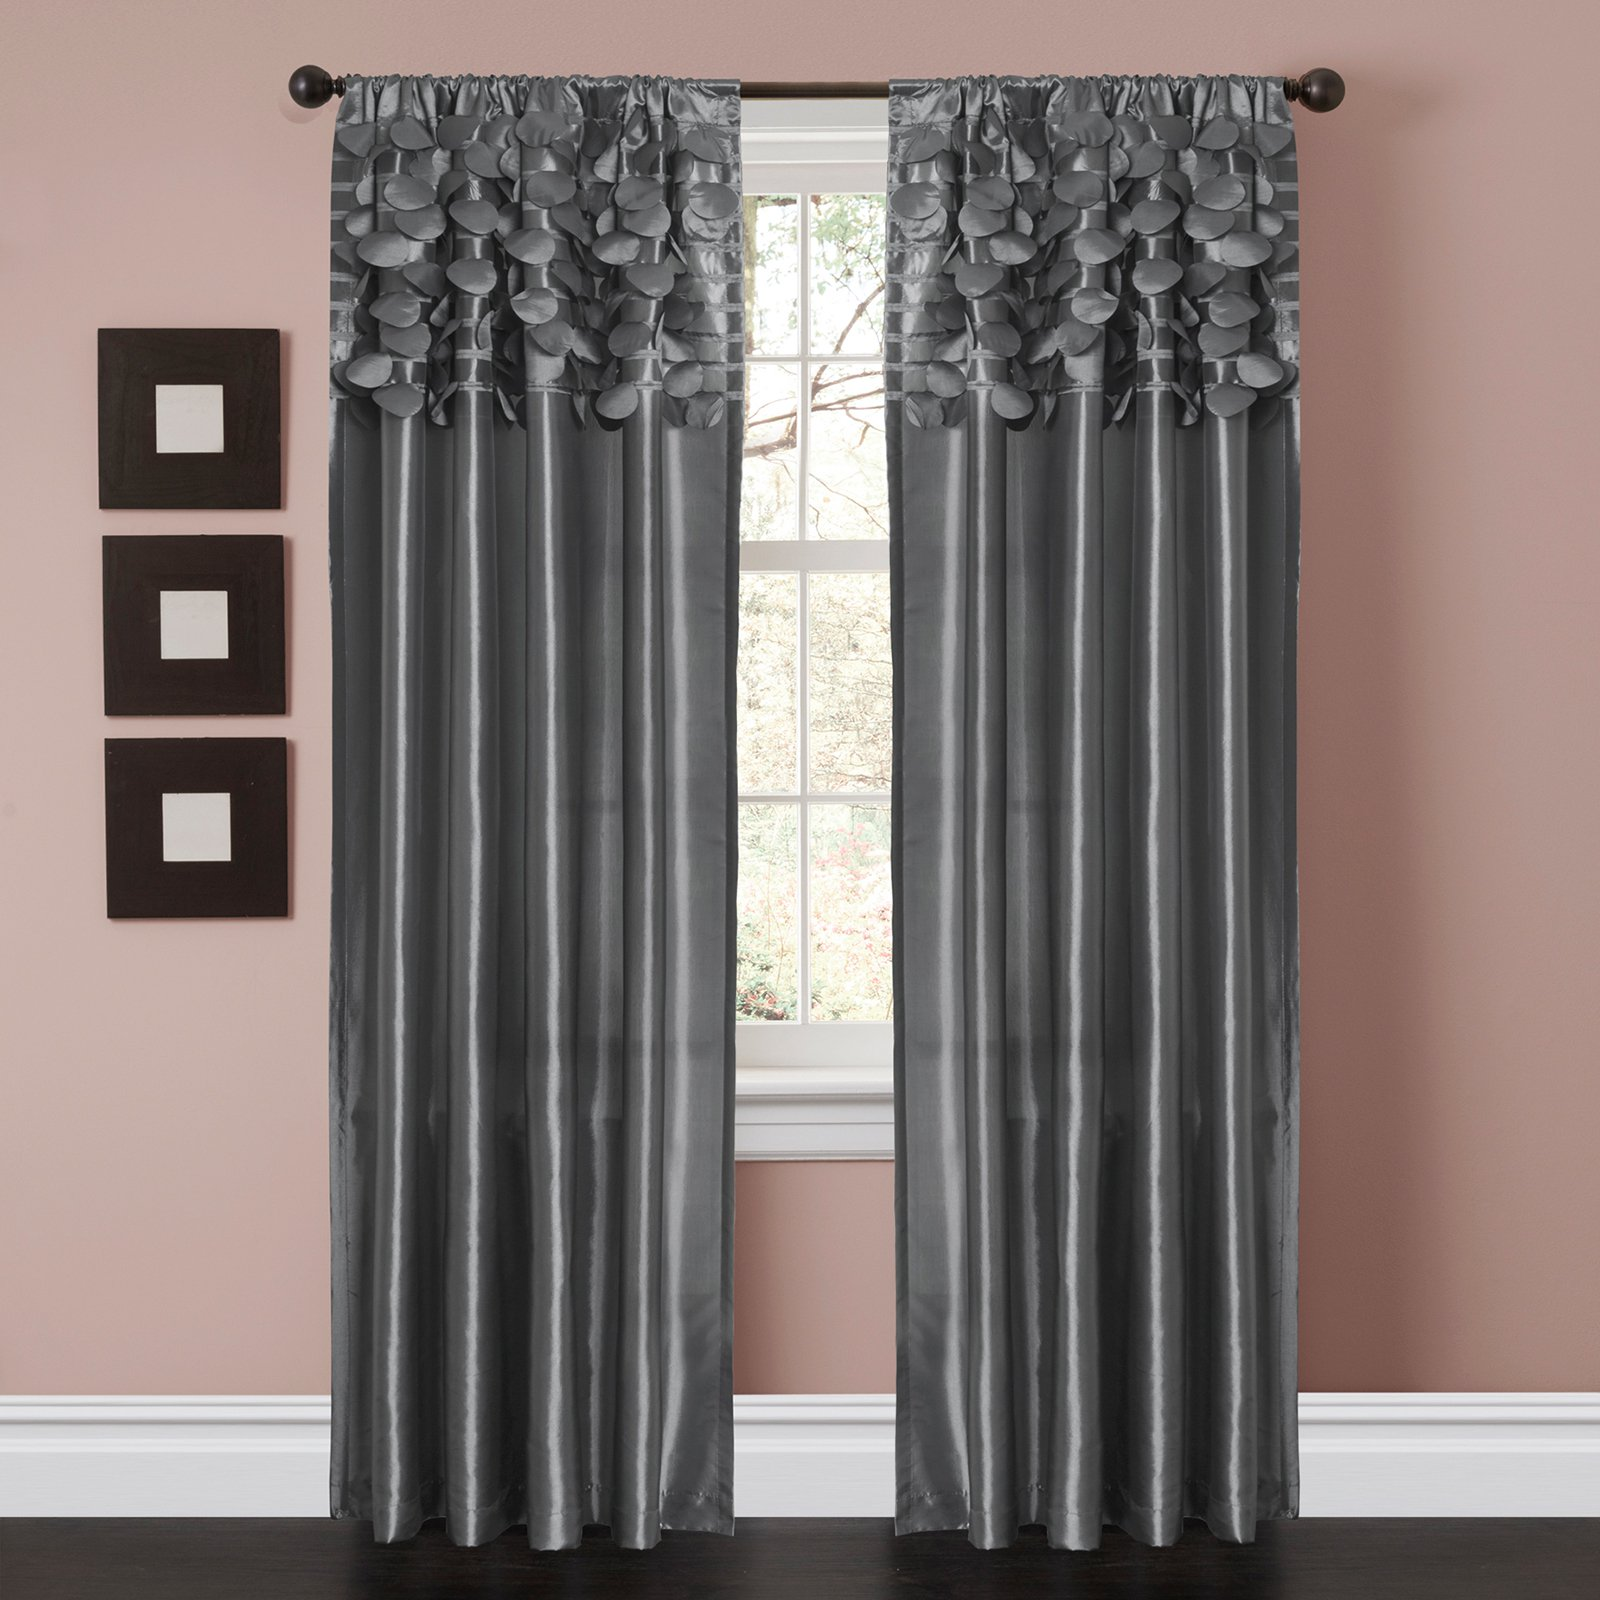 itm gray is s x curtain eclipse w darkening l image room thermal panels curtains brannon new loading